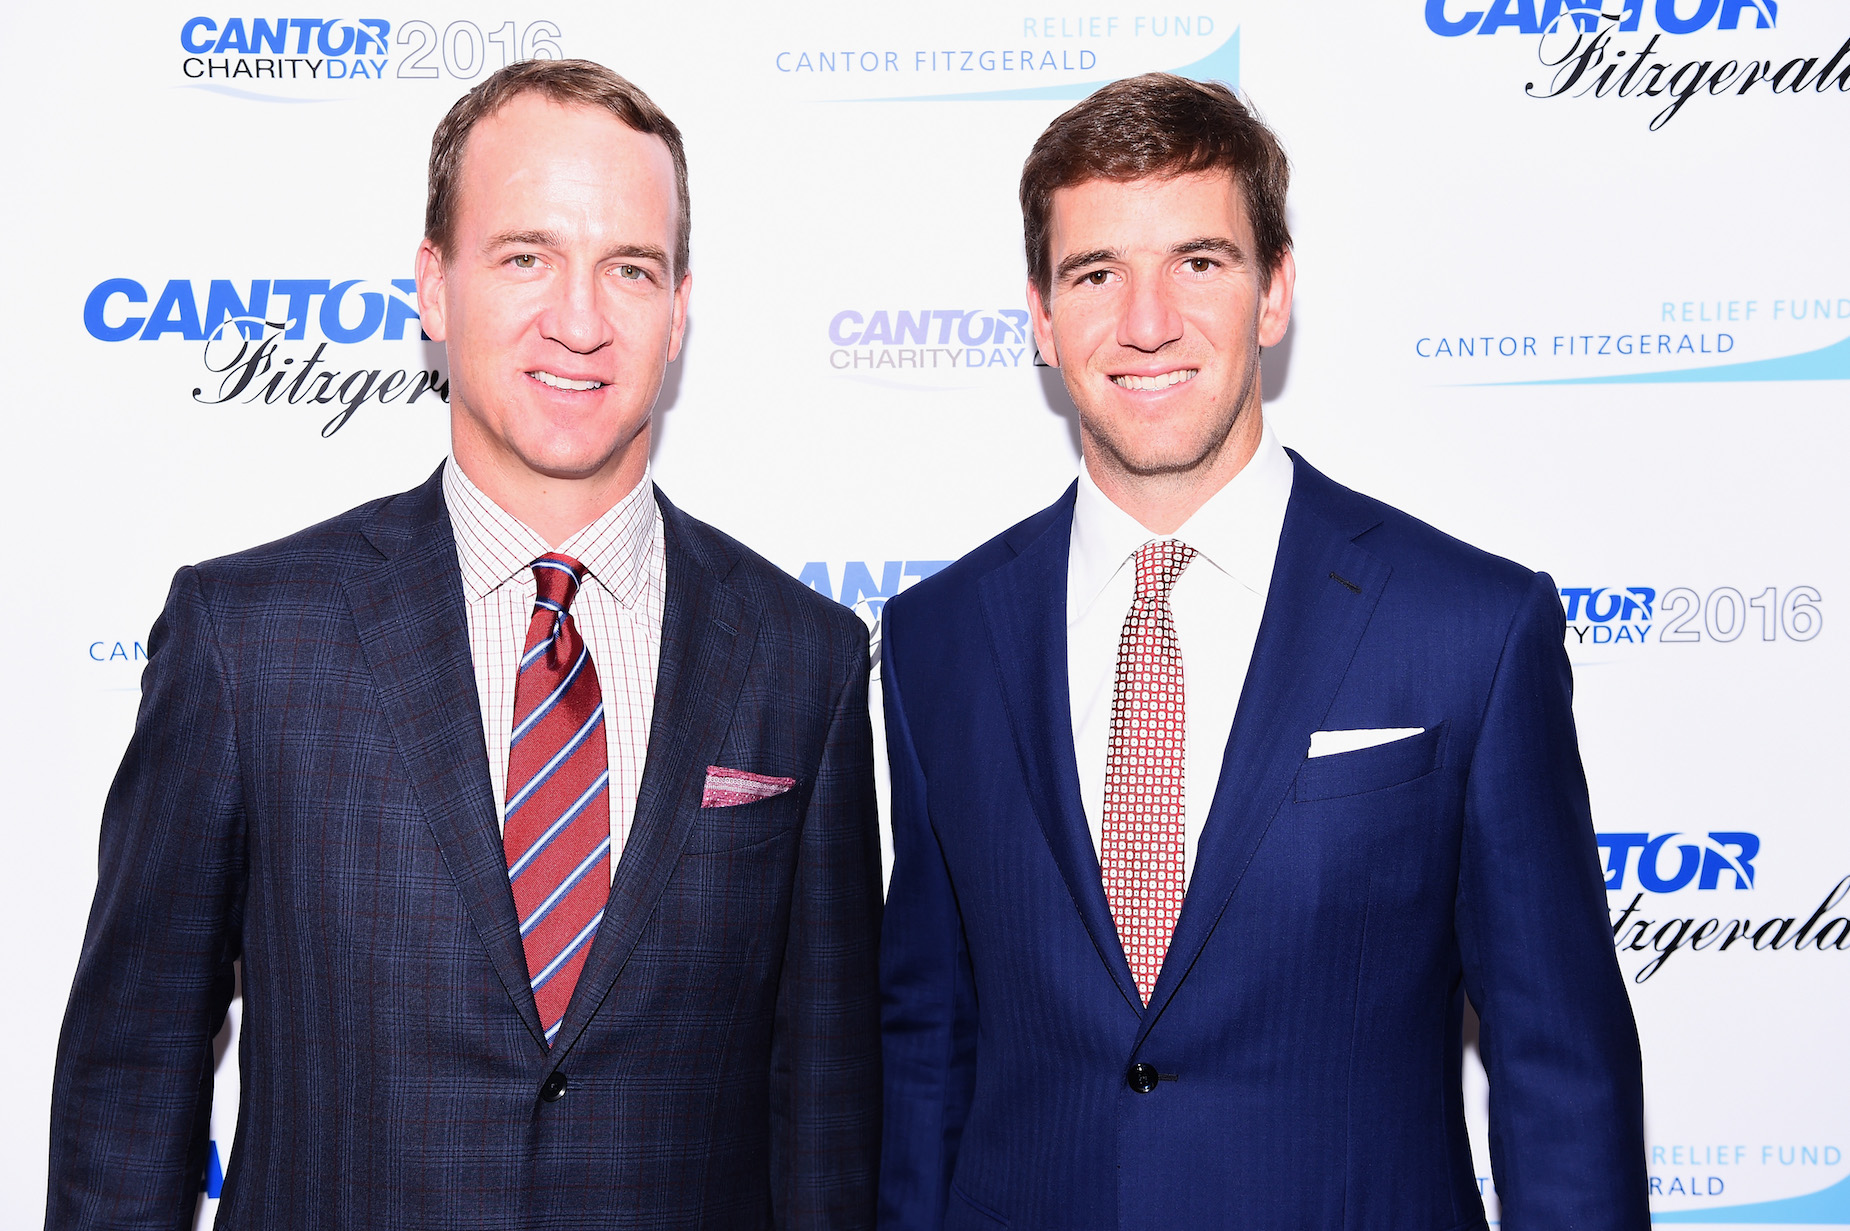 What is Eli Manning's net worth and how does it compare to Peyton Manning's?